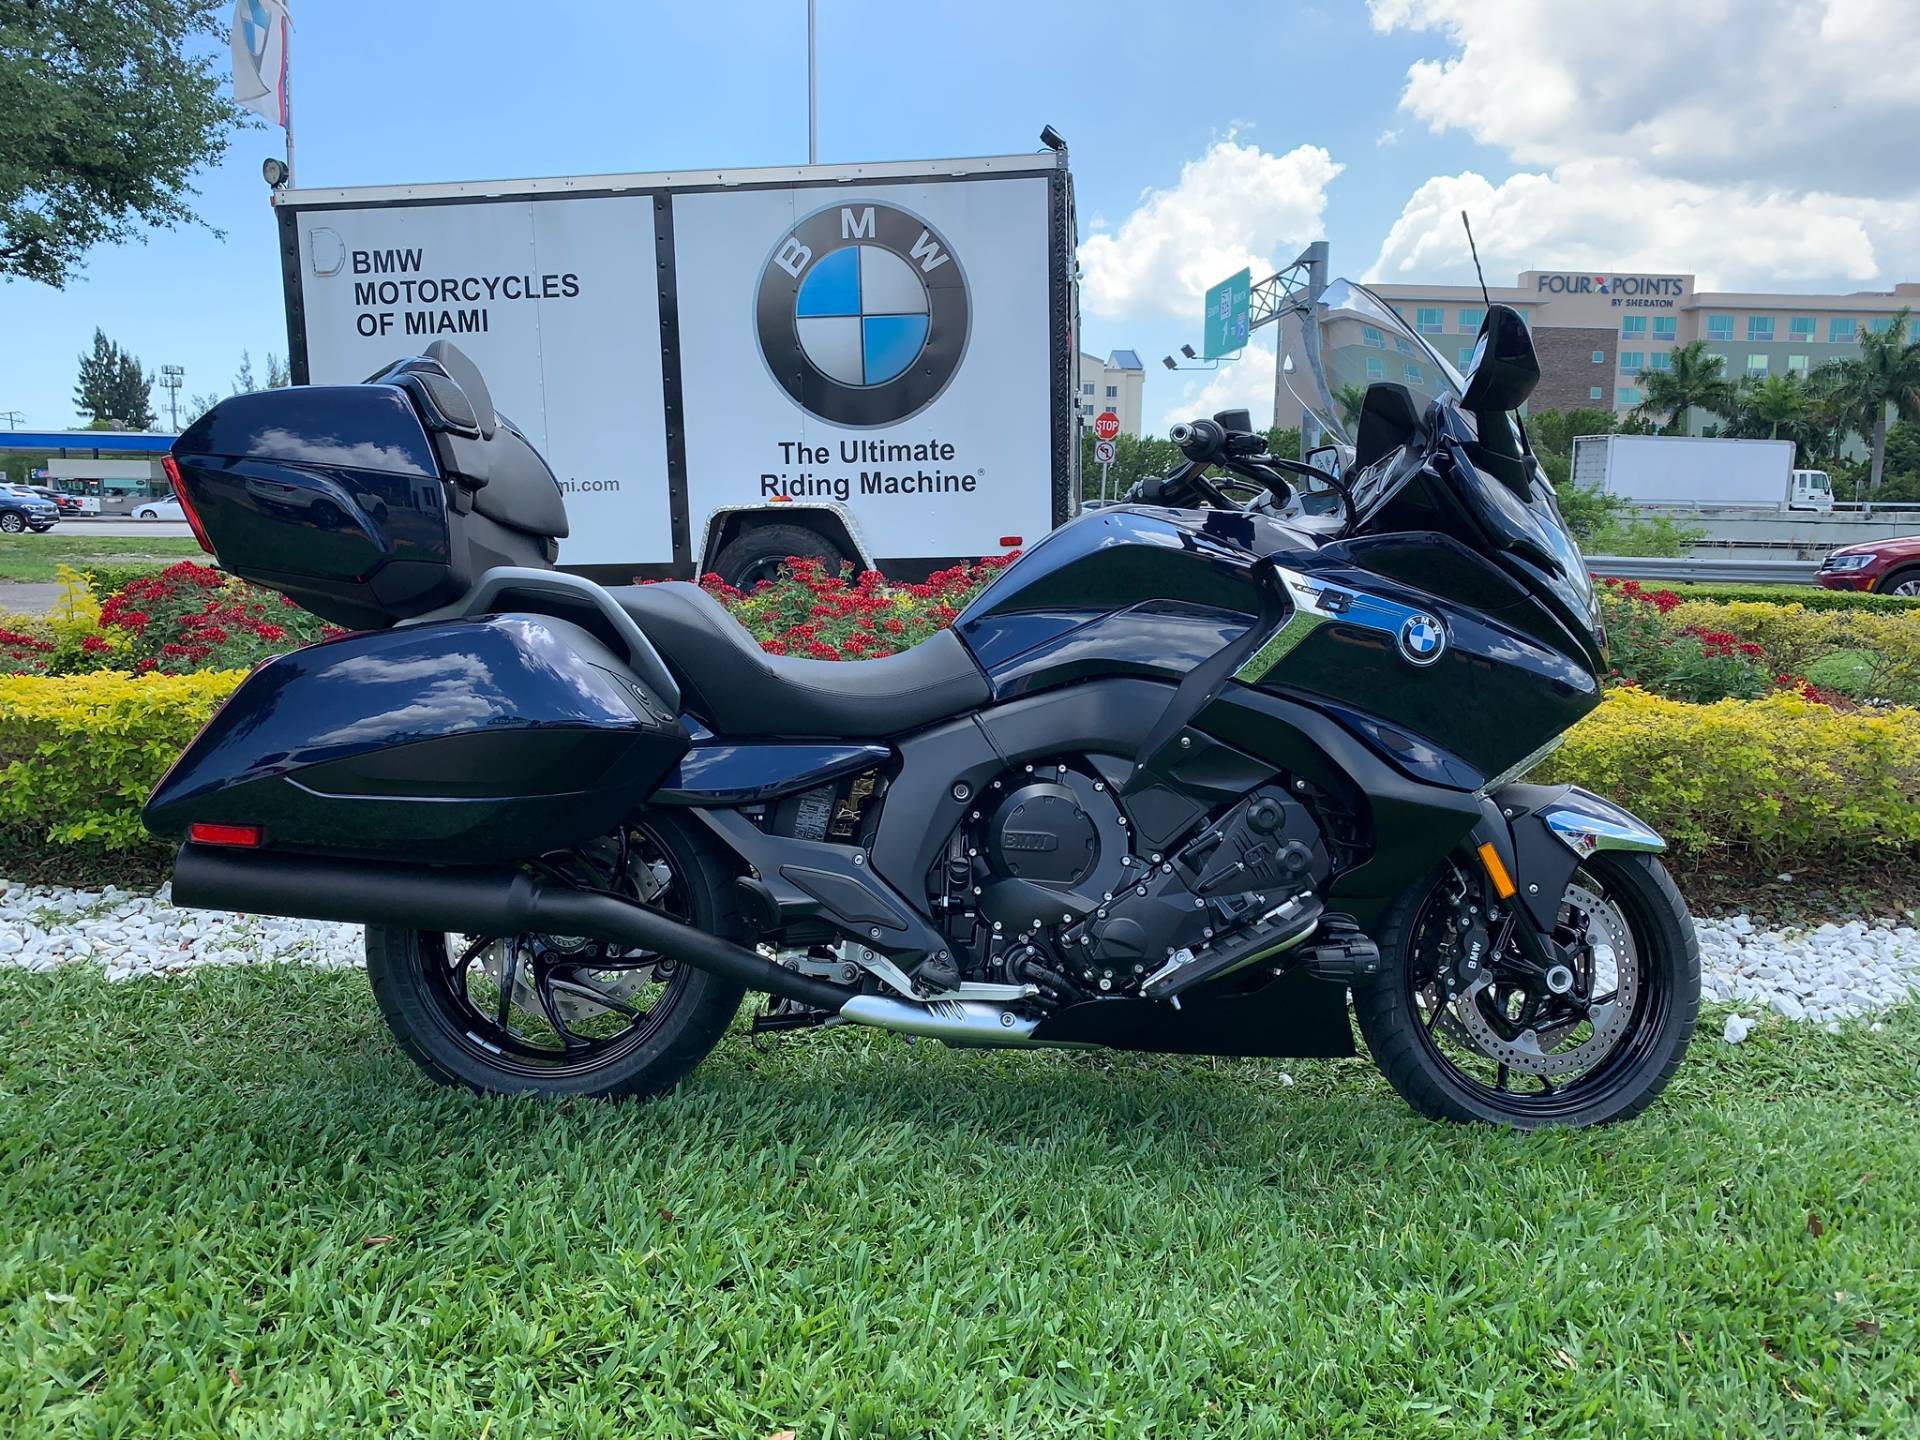 New 2019 BMW K 1600 B for sale, BMW K 1600B for sale, BMW Motorcycle K1600B, new BMW Bagger, Gran America. BMW Motorcycles of Miami, Motorcycles of Miami, Motorcycles Miami - Photo 24